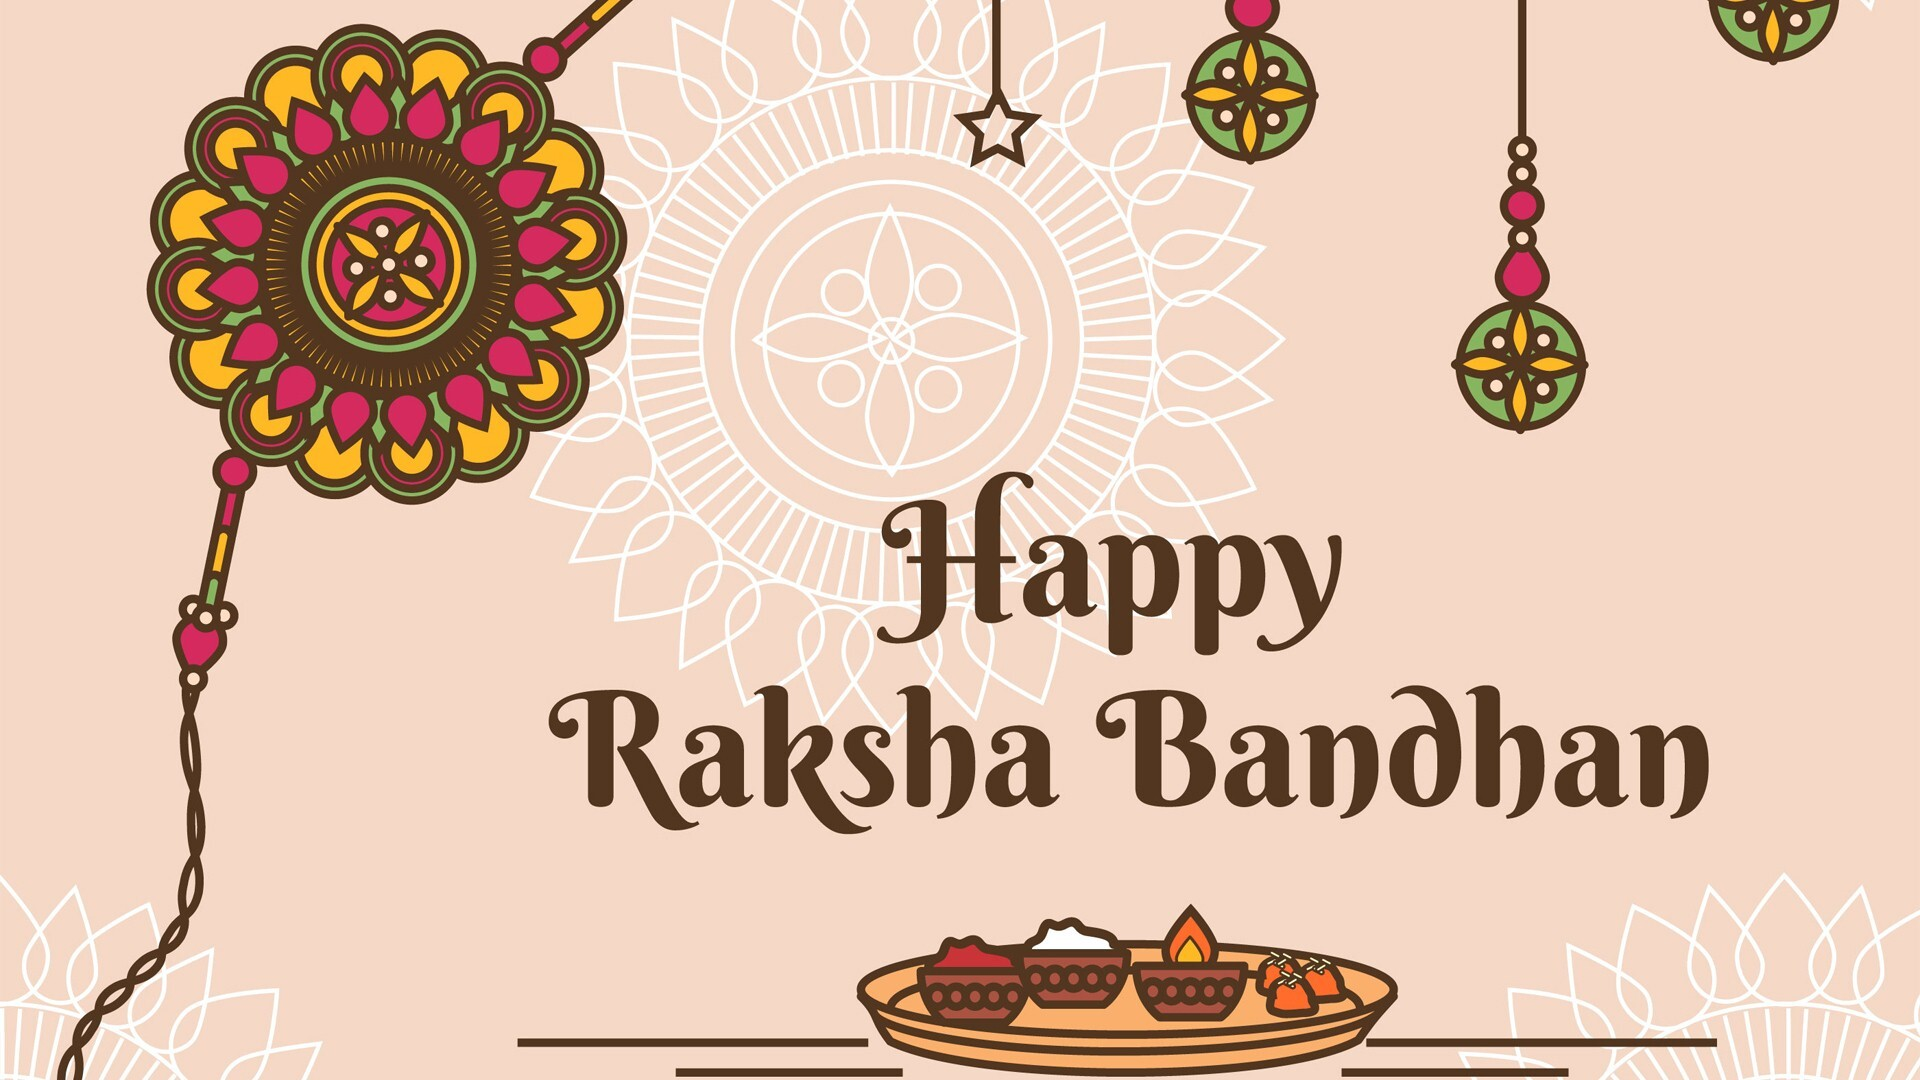 Happy Raksha Bandhan 2018 Hd Wallpaper Hd Wallpapers